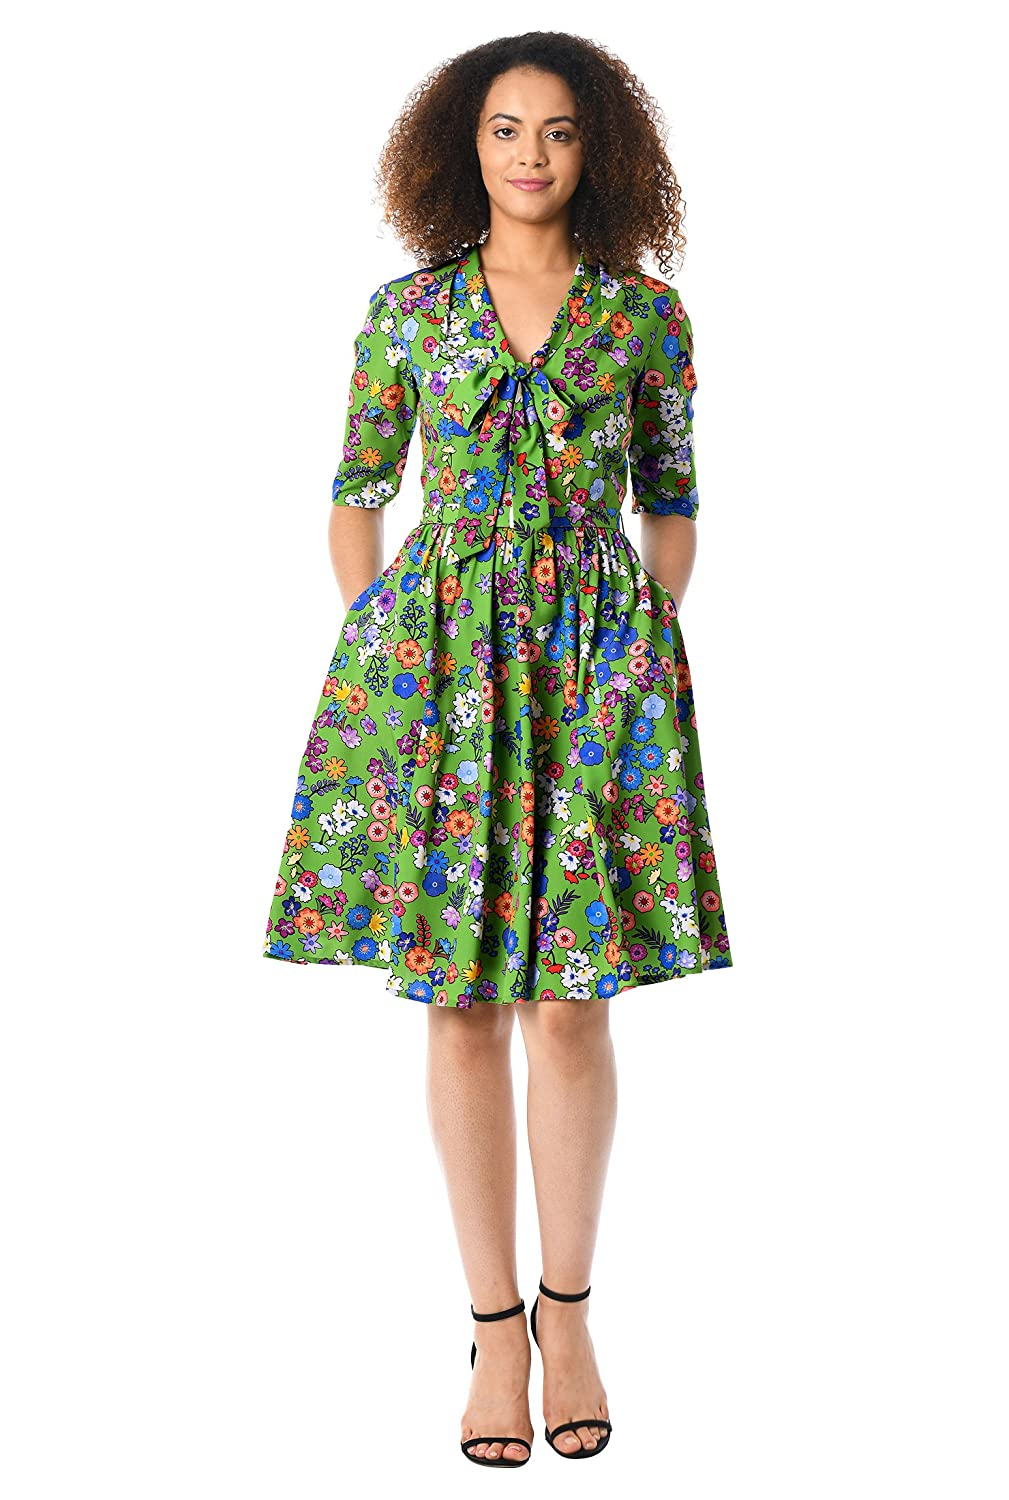 60s 70s Plus Size Dresses, Clothing, Costumes eShakti Womens Floral Print tie-Neck Crepe Dress $69.95 AT vintagedancer.com